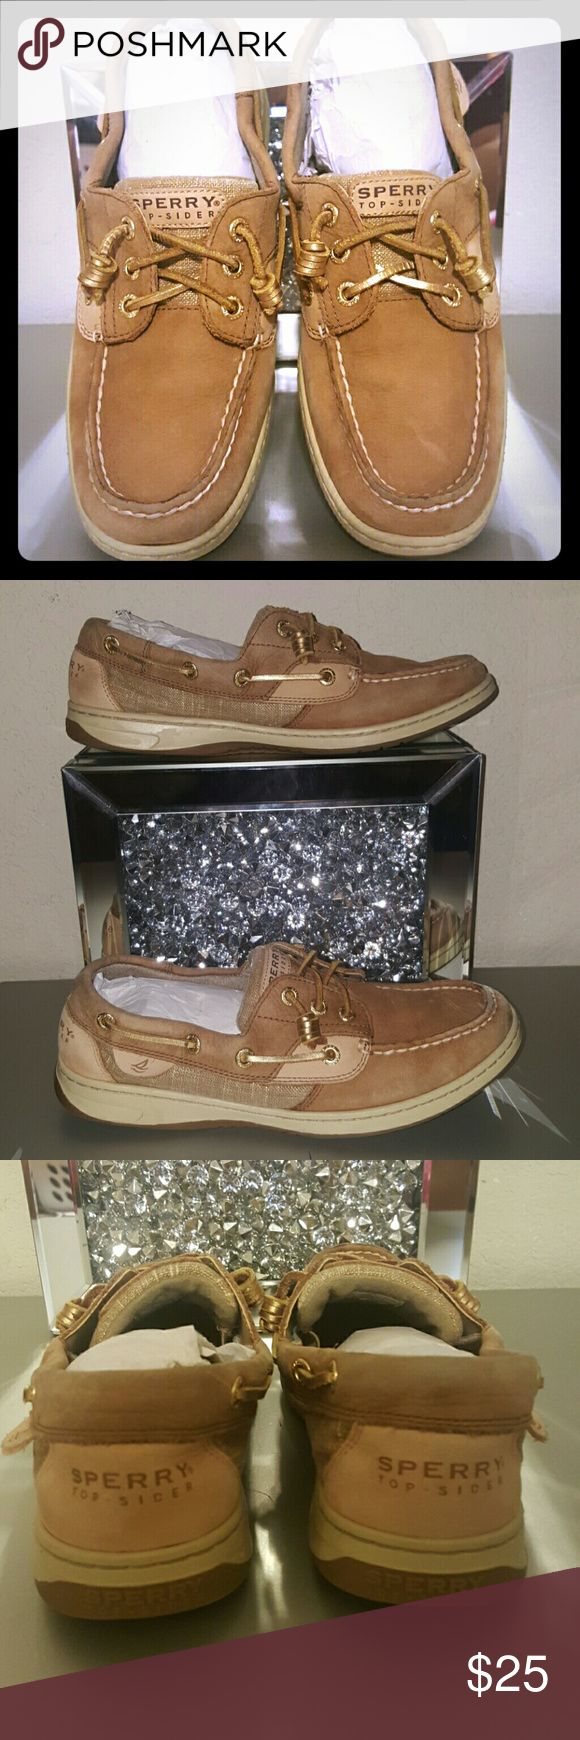 Sperry Top Siders Ladies loafers Sperry Top Siders Ladies boat shoes  Hint of gold and shimmer throughout make this a classic staple for any closet this summer. Sperry Shoes Flats & Loafers